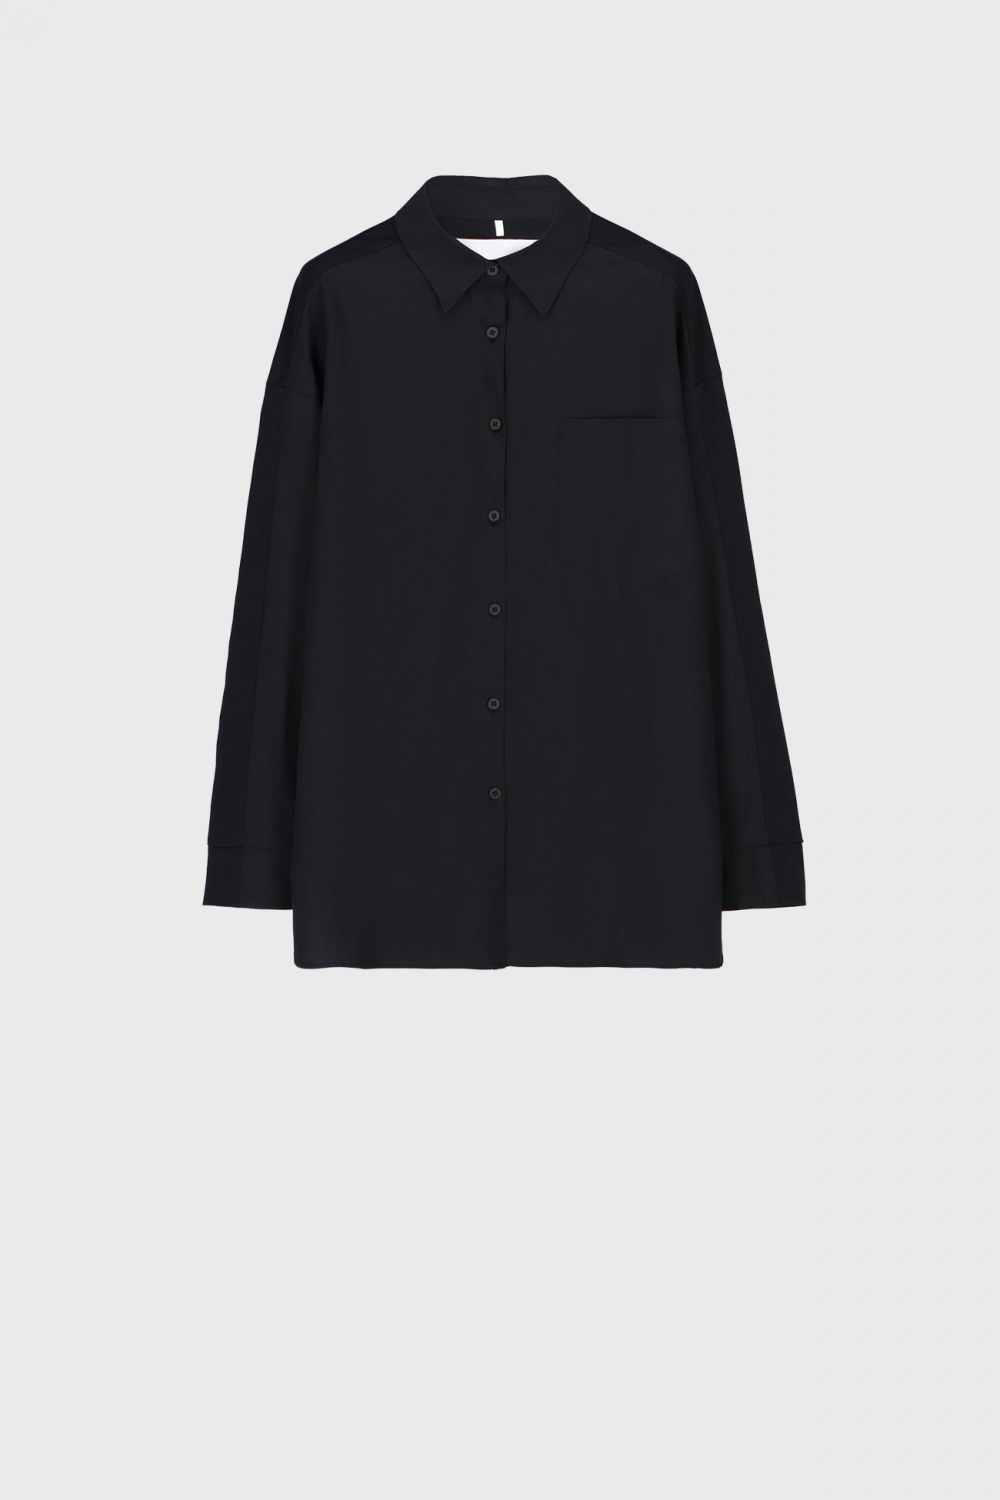 Women's oversized shirt style sweatshirt in black cotton and jersey